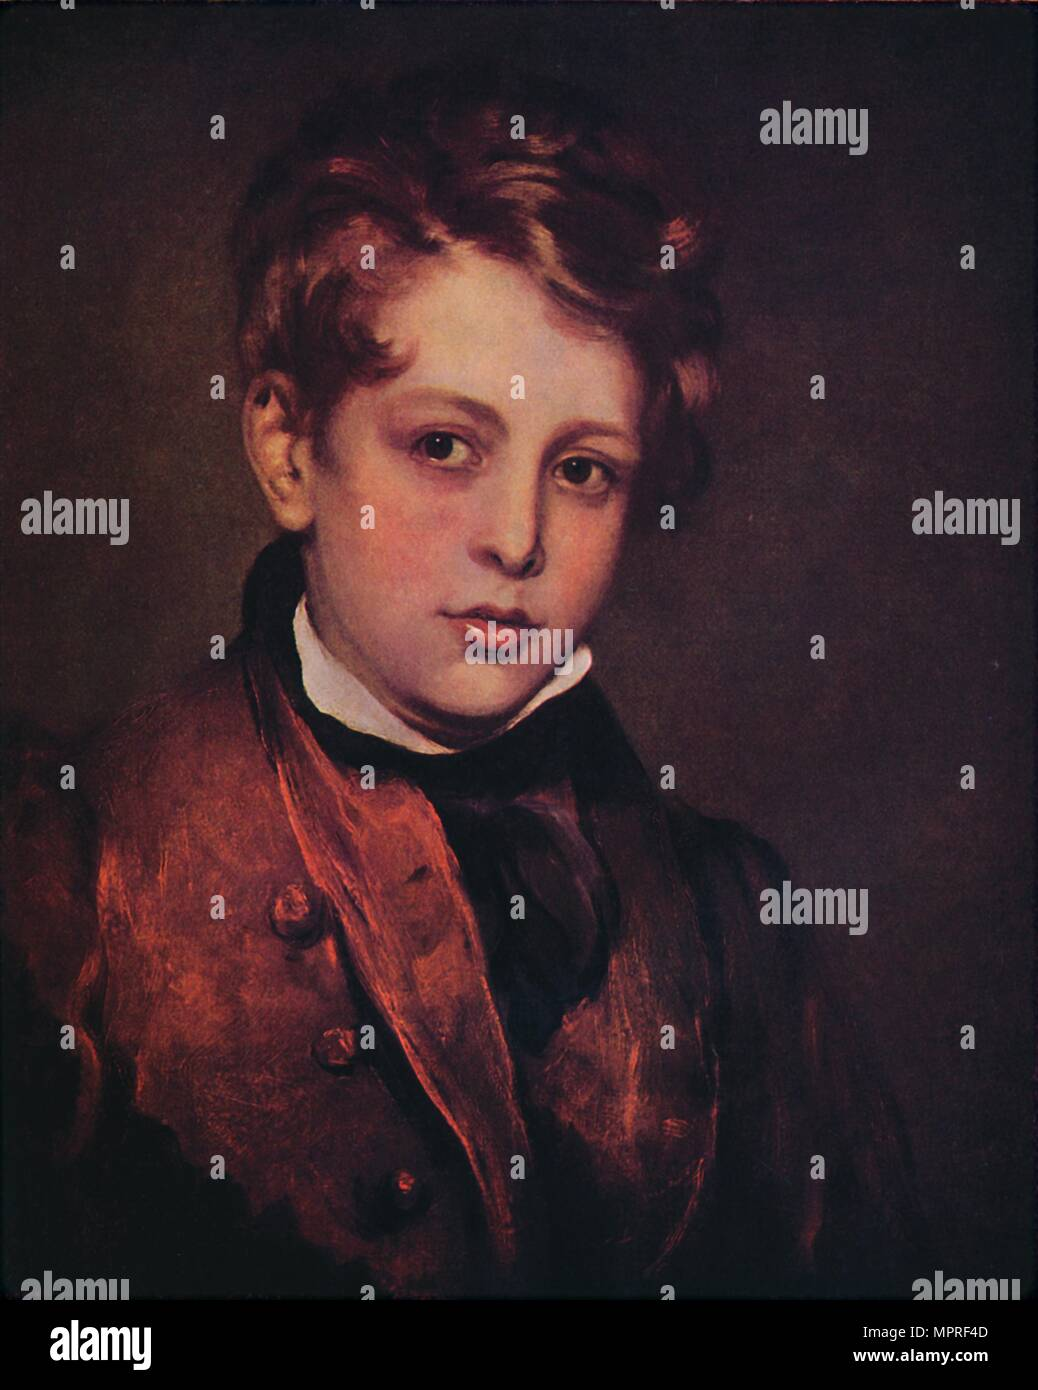 'Lord Byron as a Boy', 1799, (1947). Artist: Thomas Lawrence. - Stock Image